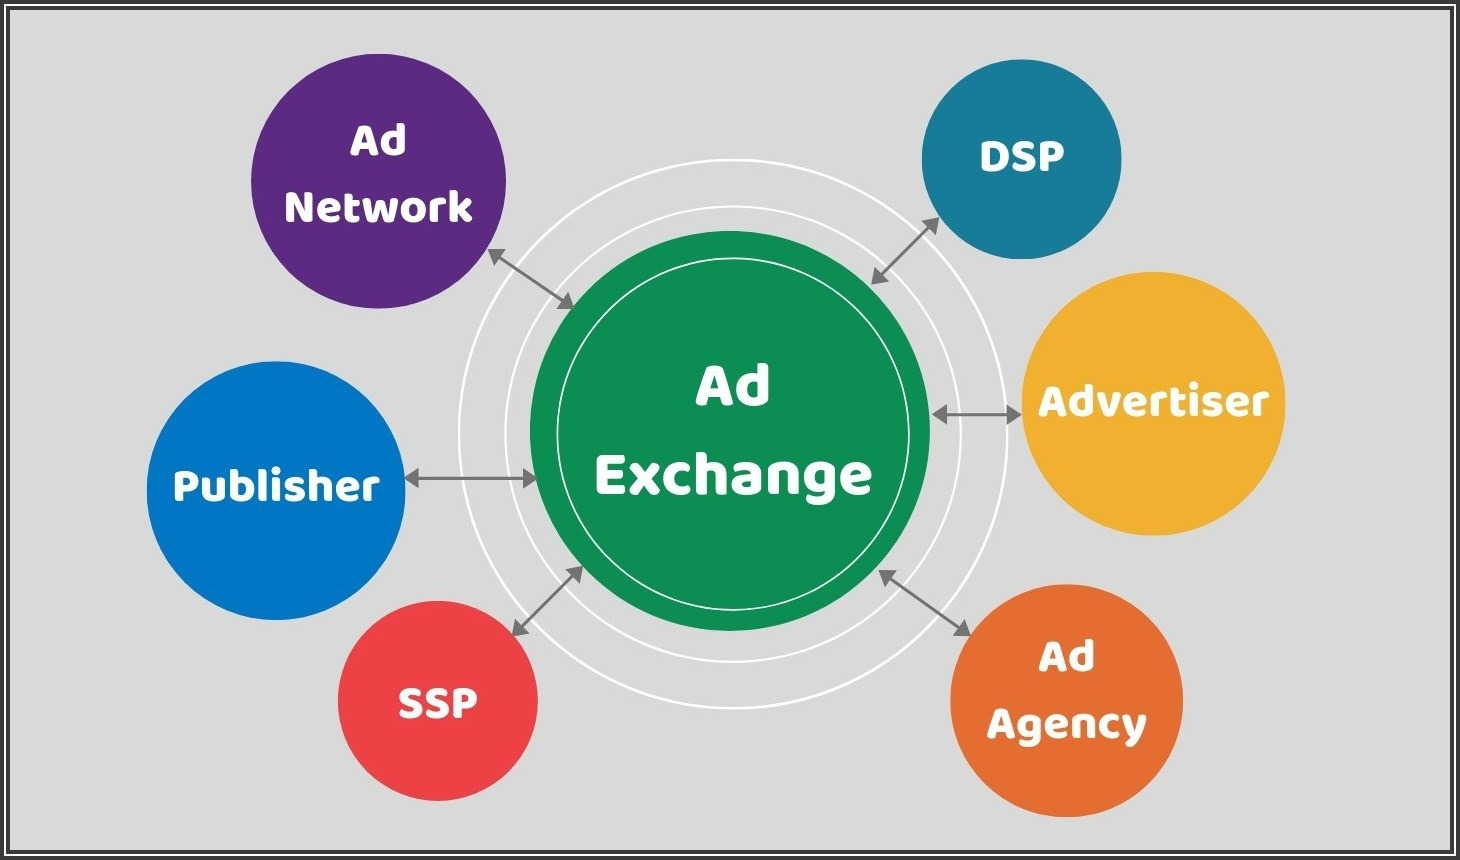 Ad Exchange